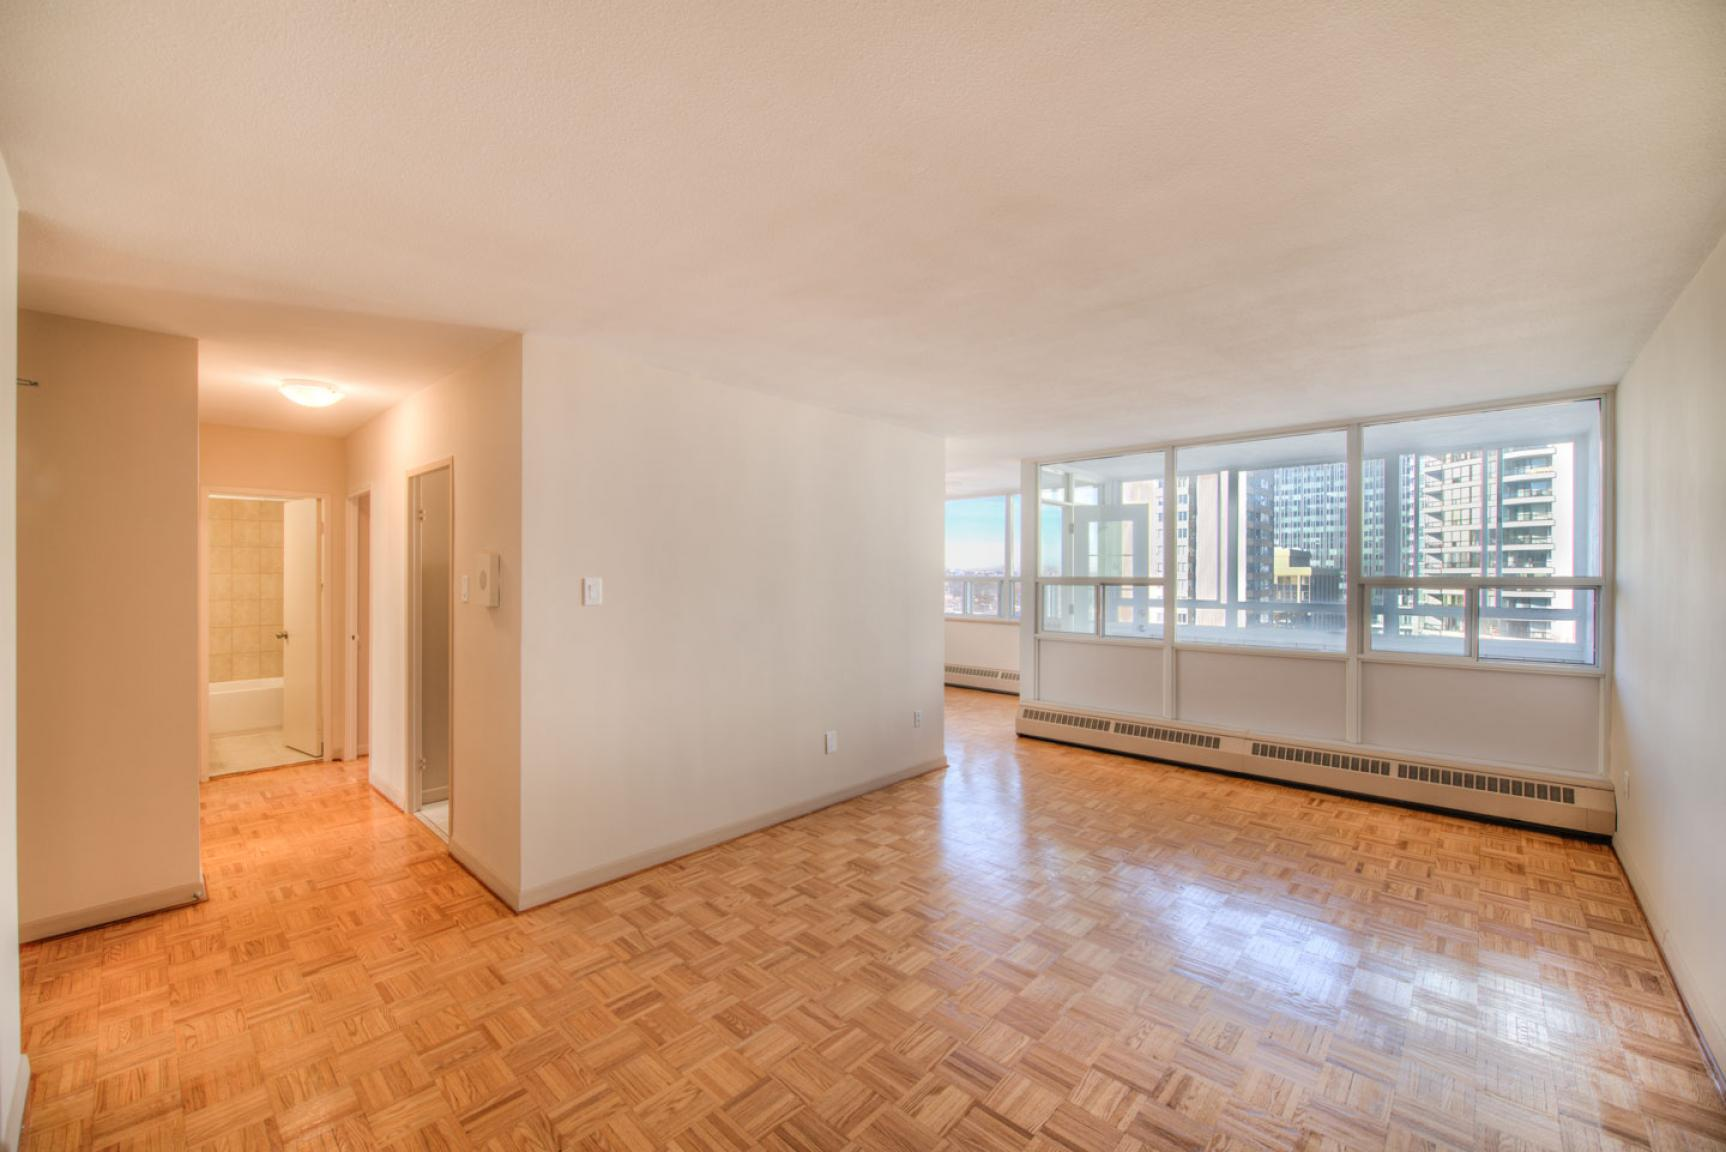 Studio / Bachelor Apartments for rent in Toronto at Dunfield Tower - Photo 08 - RentersPages – L138878